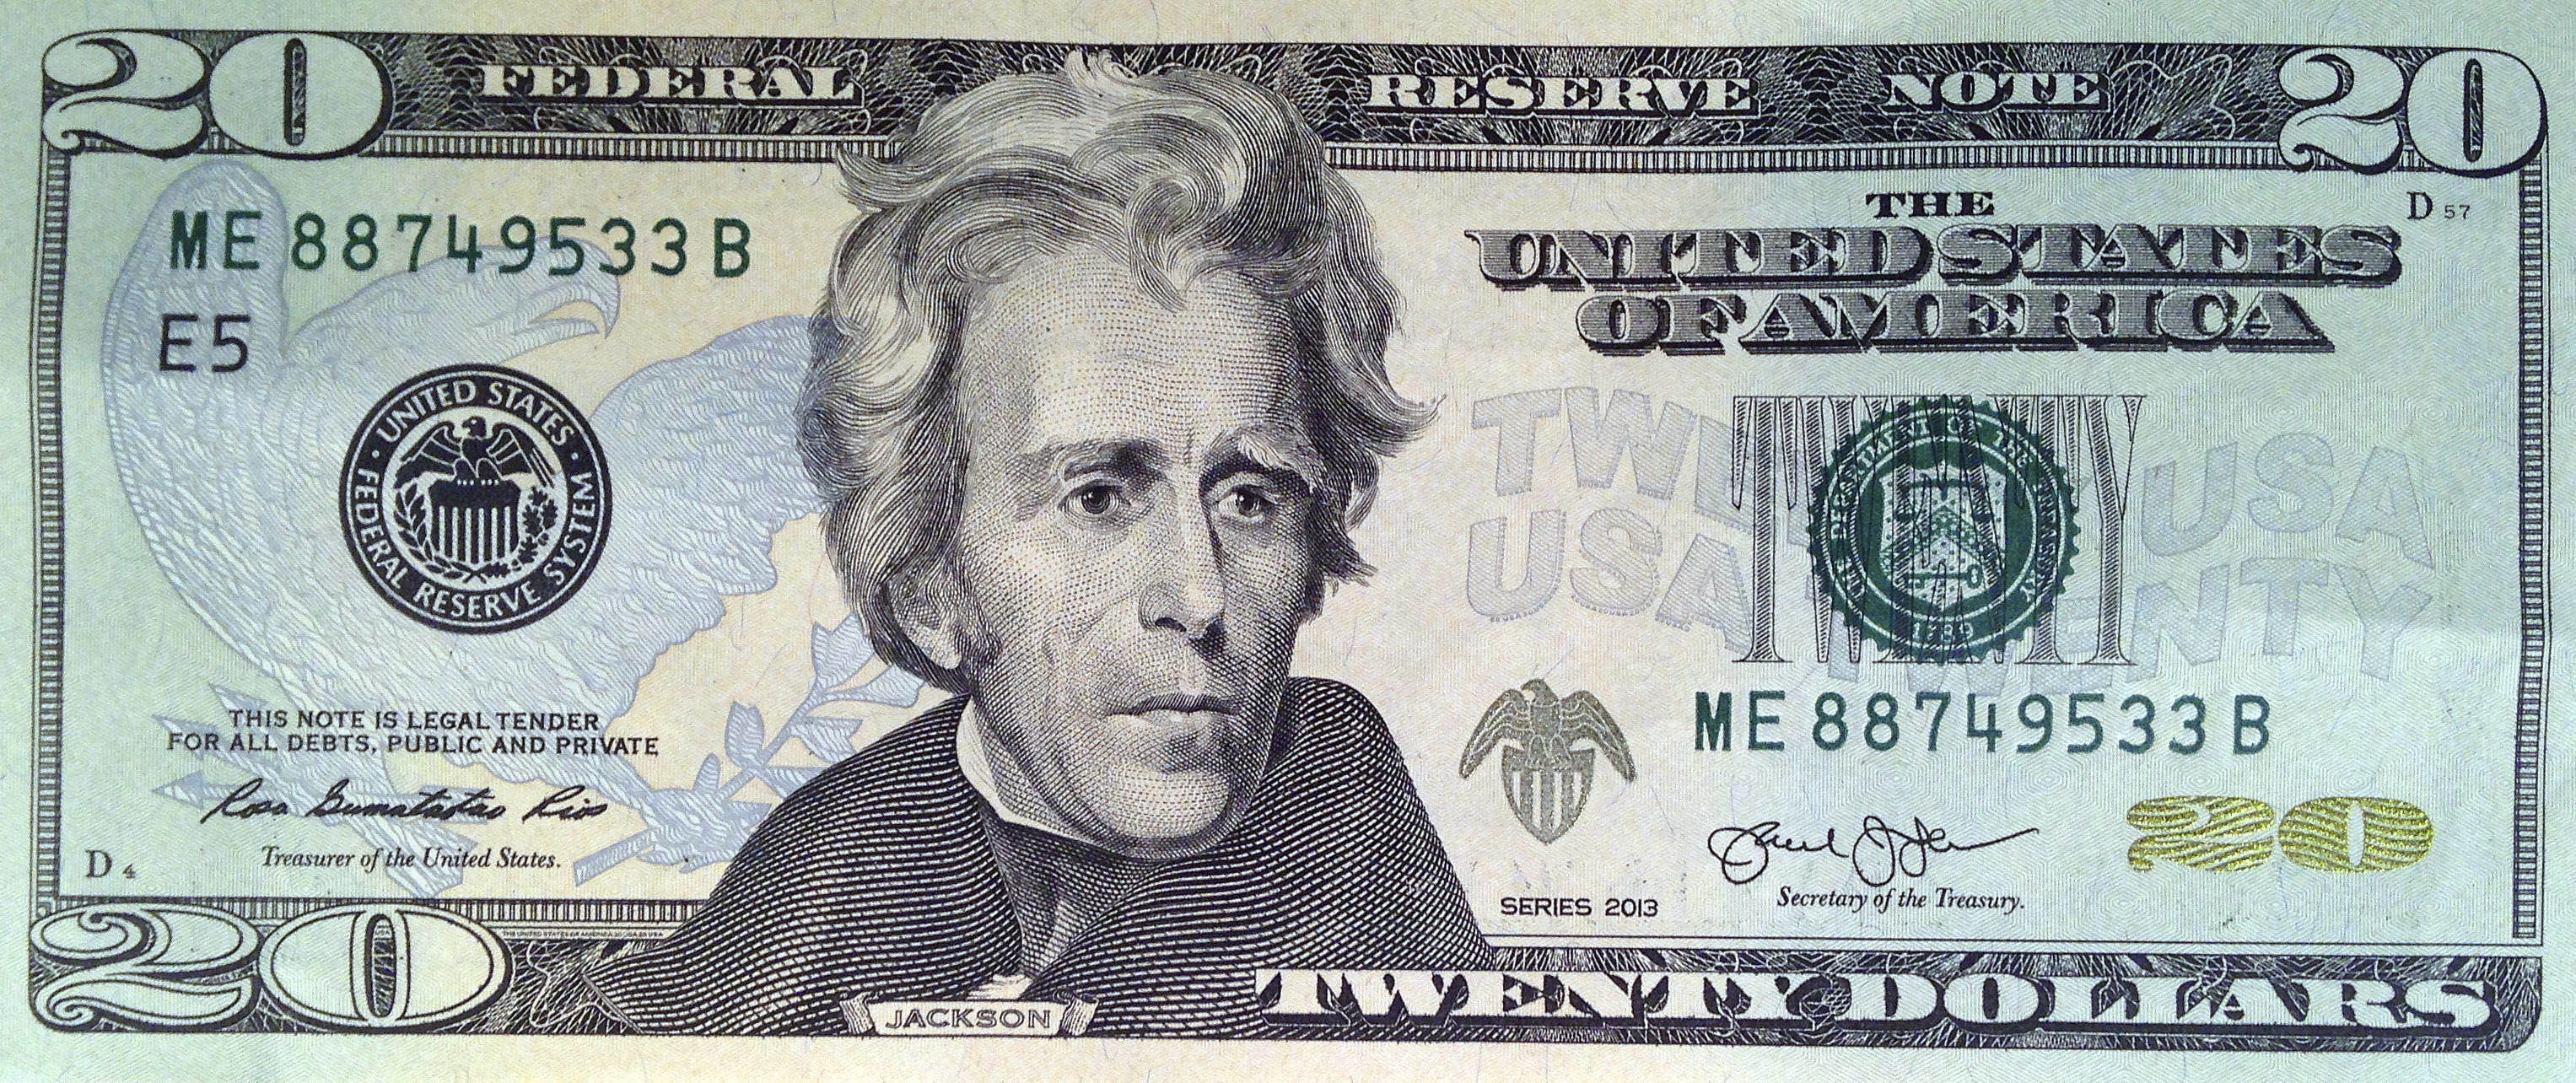 When was the last time US paper currency changed? - The